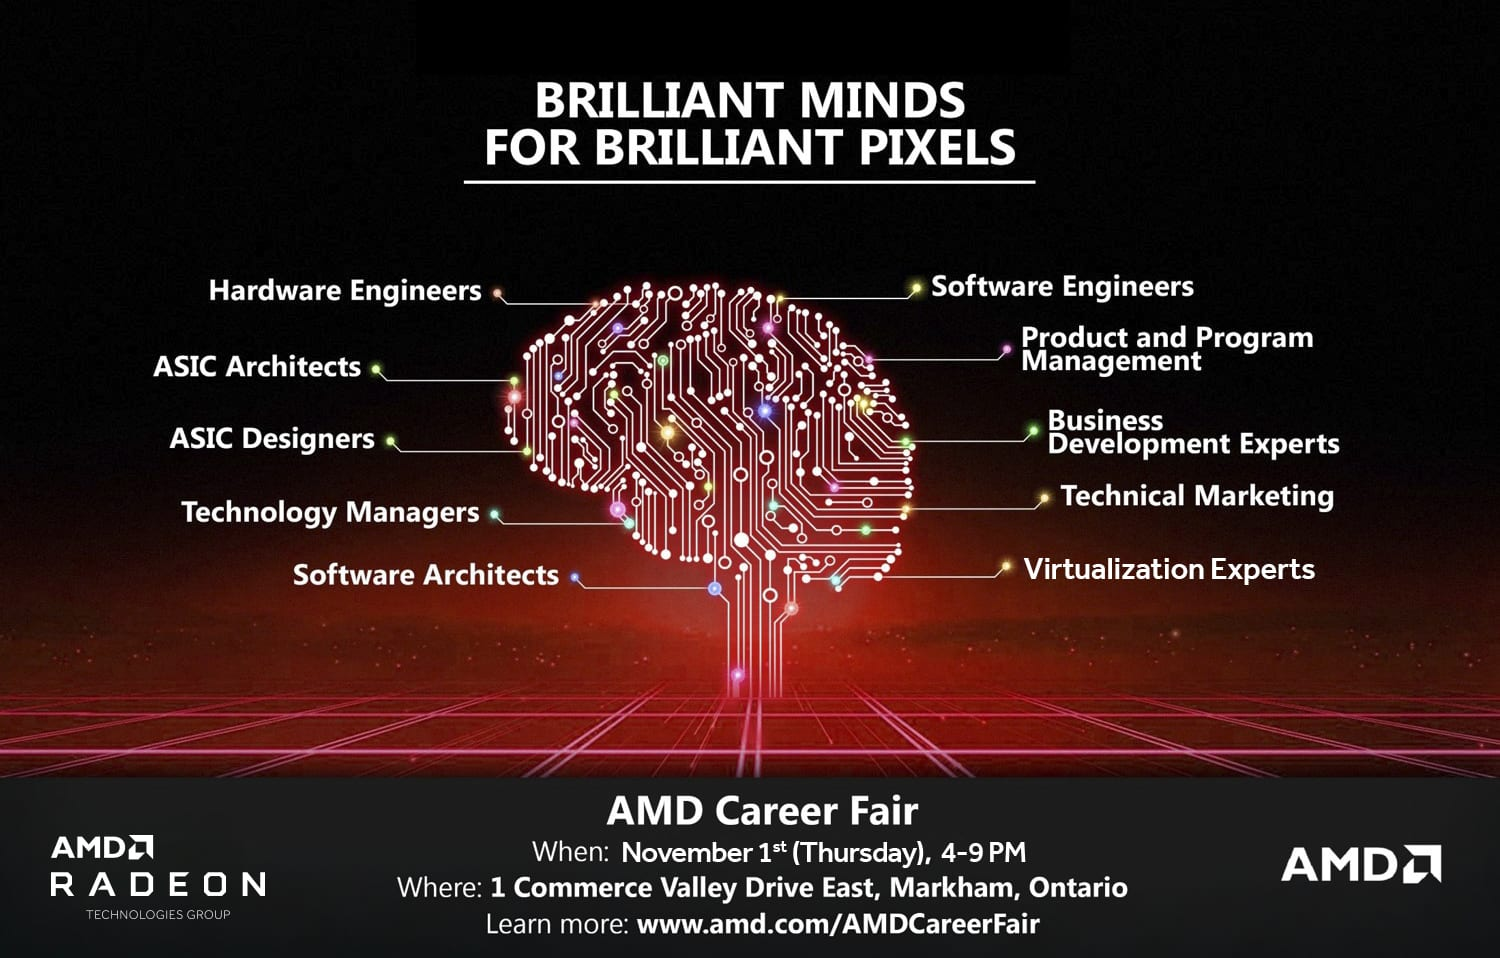 AMD Career Fair 2018 -Nov 1, 4-9PM at 1 Commerce Valley Drive East, Markham